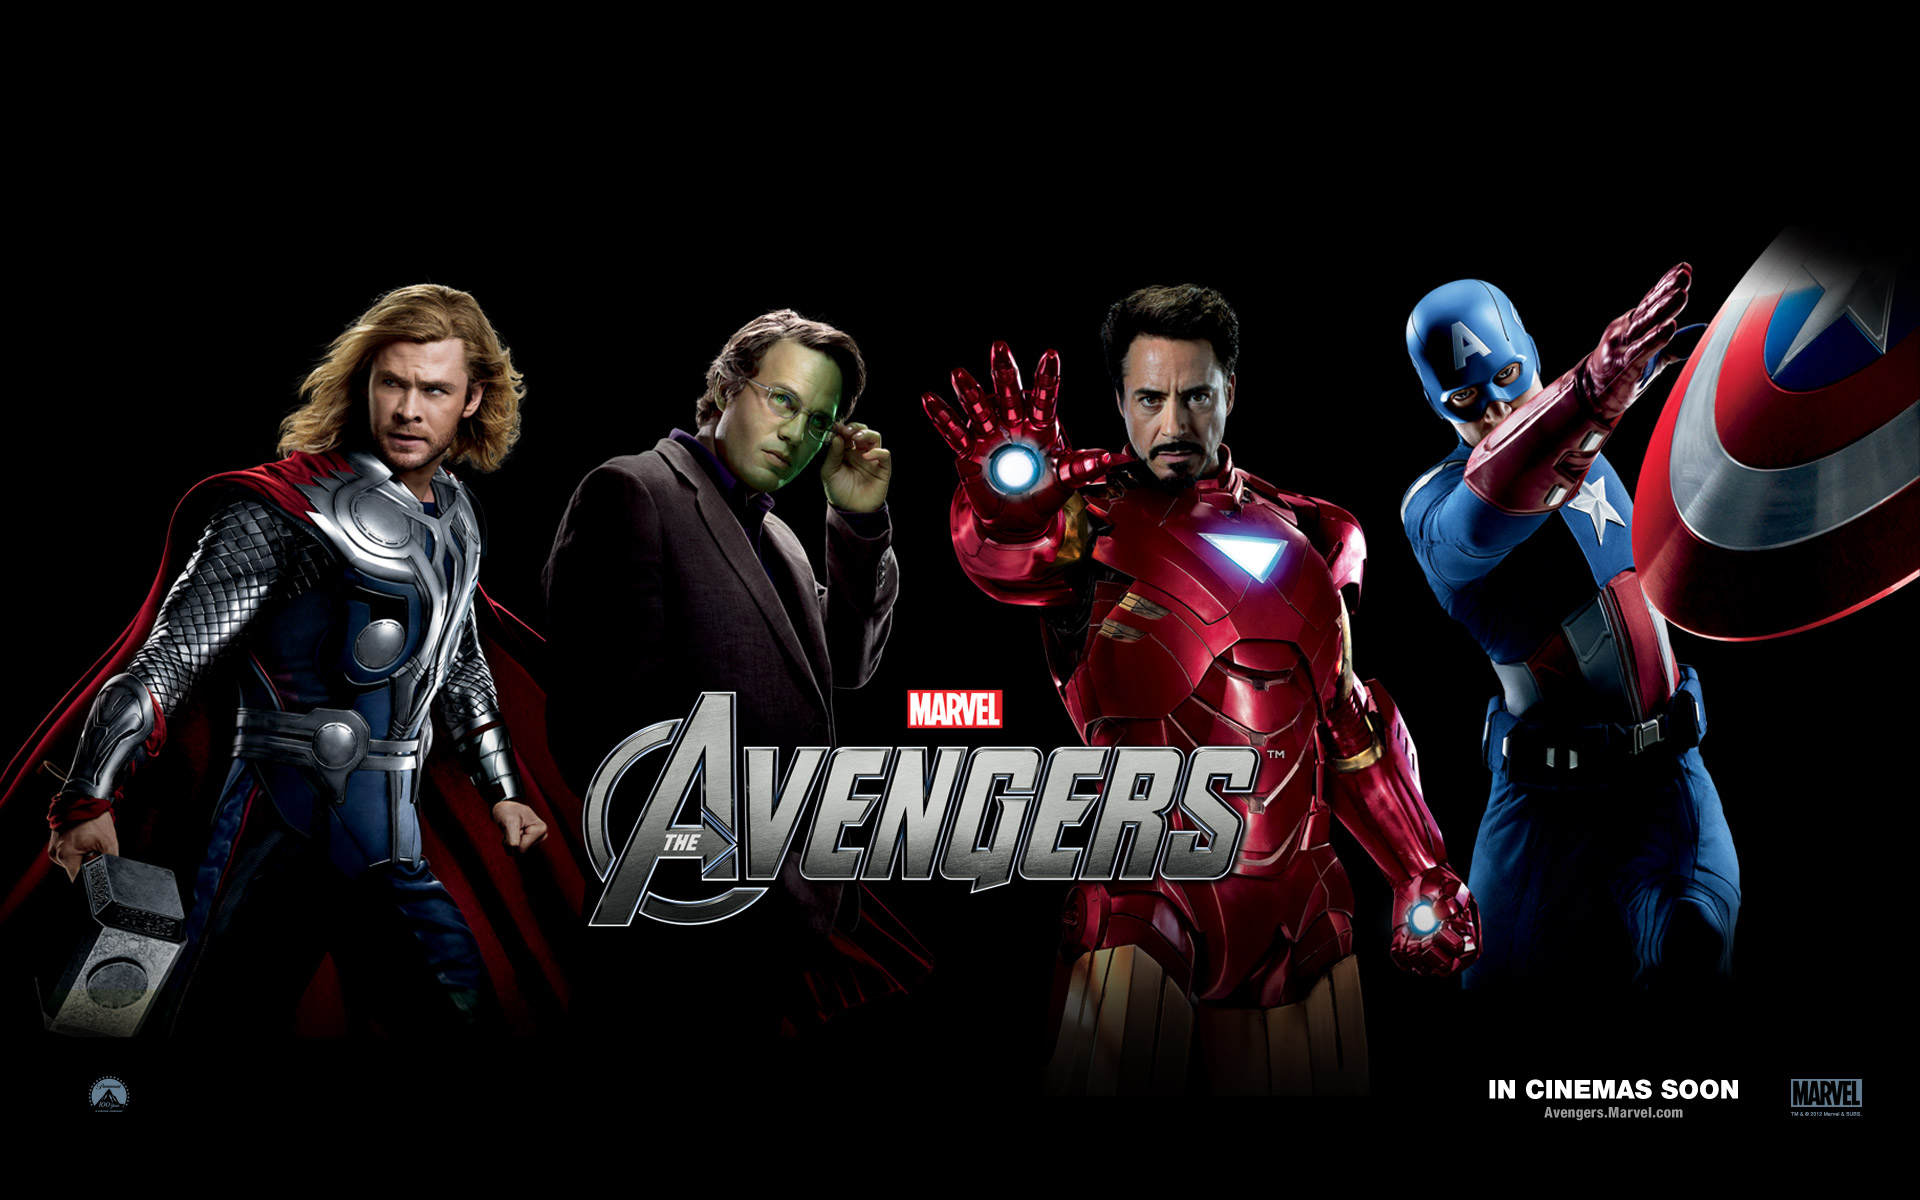 avengers desktop wallpaper wallpapers 1920x1200 1920x1200